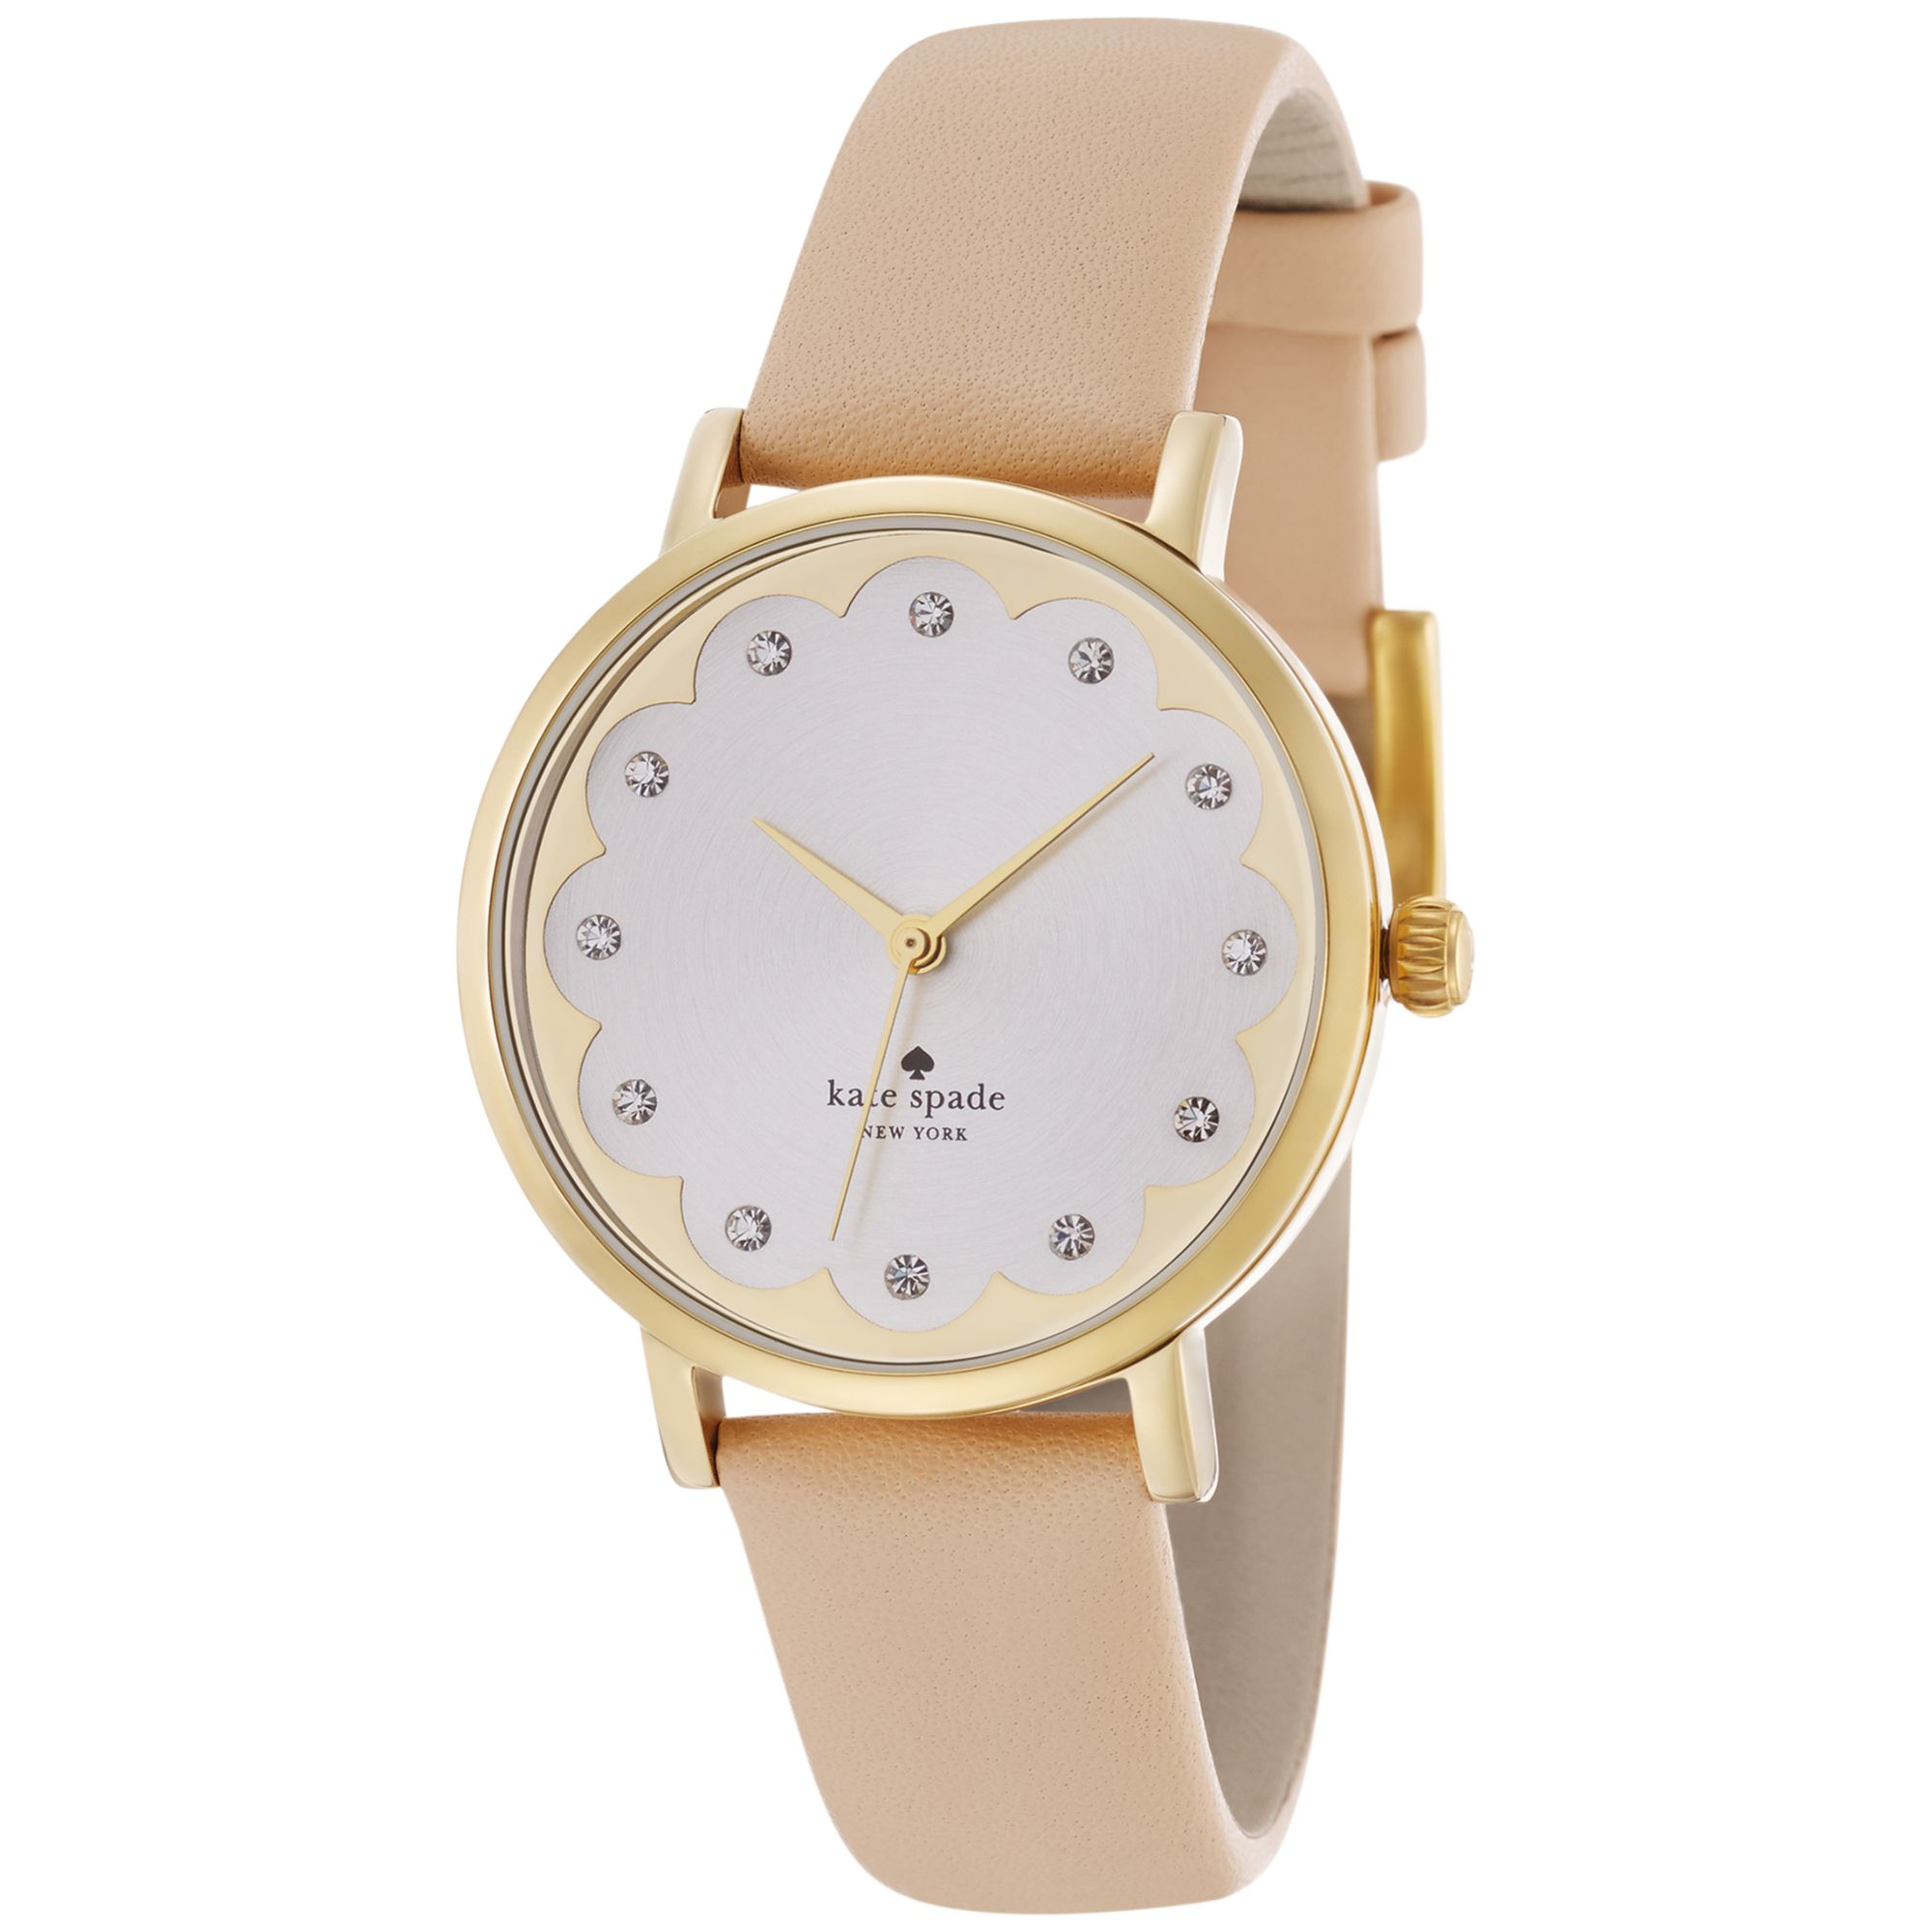 kate spade women 39 s metro vachetta leather strap watch 34mm 1yru0586 in gold lyst